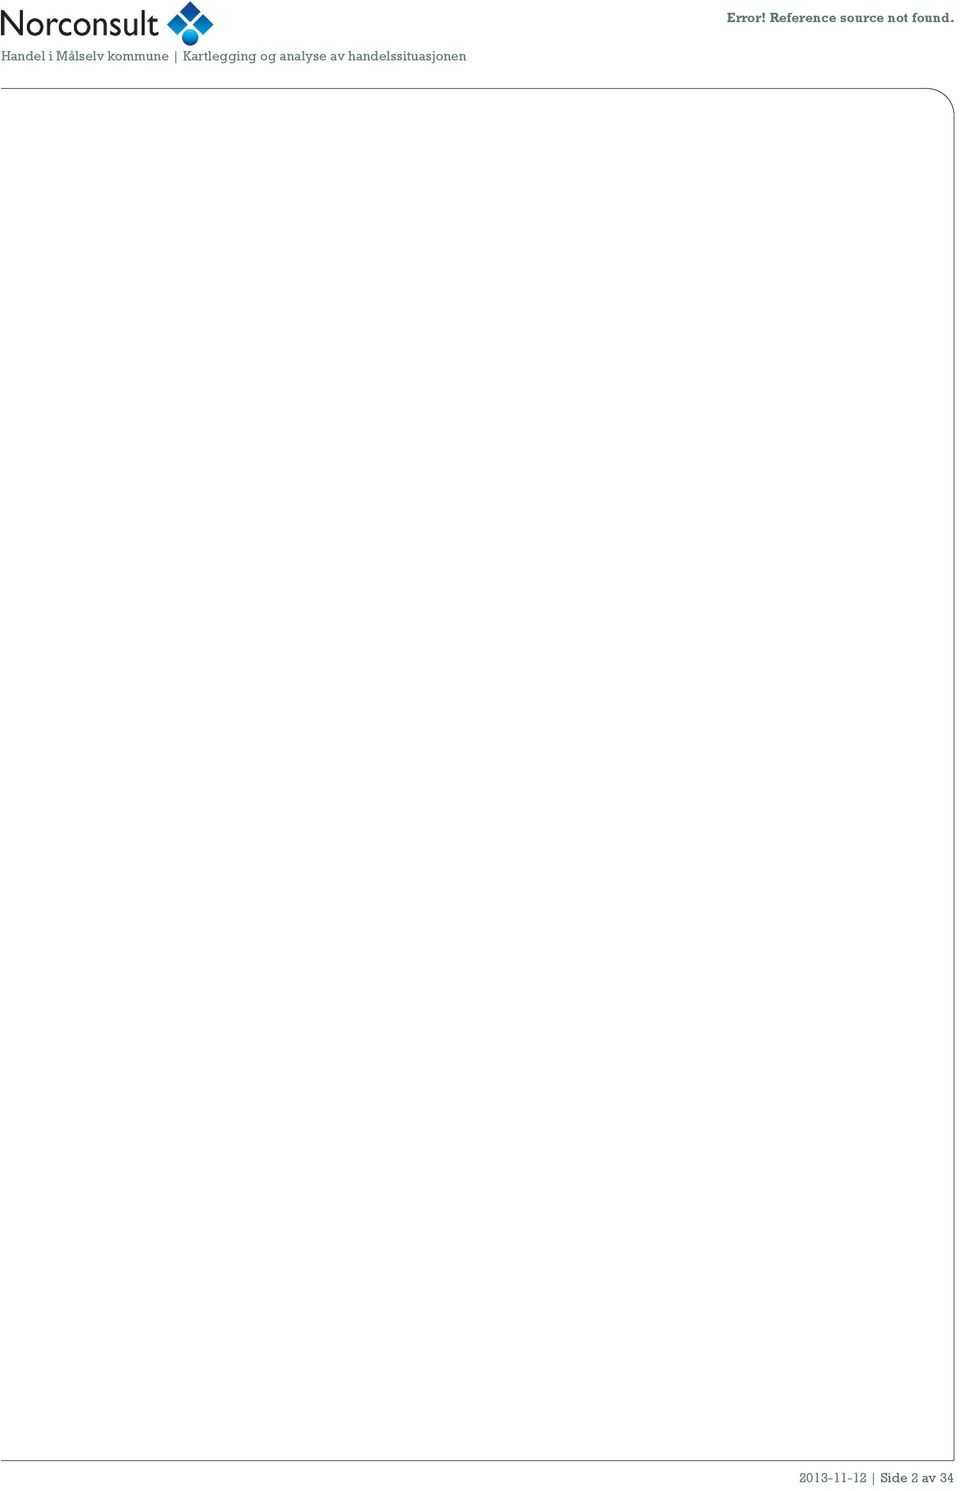 source not